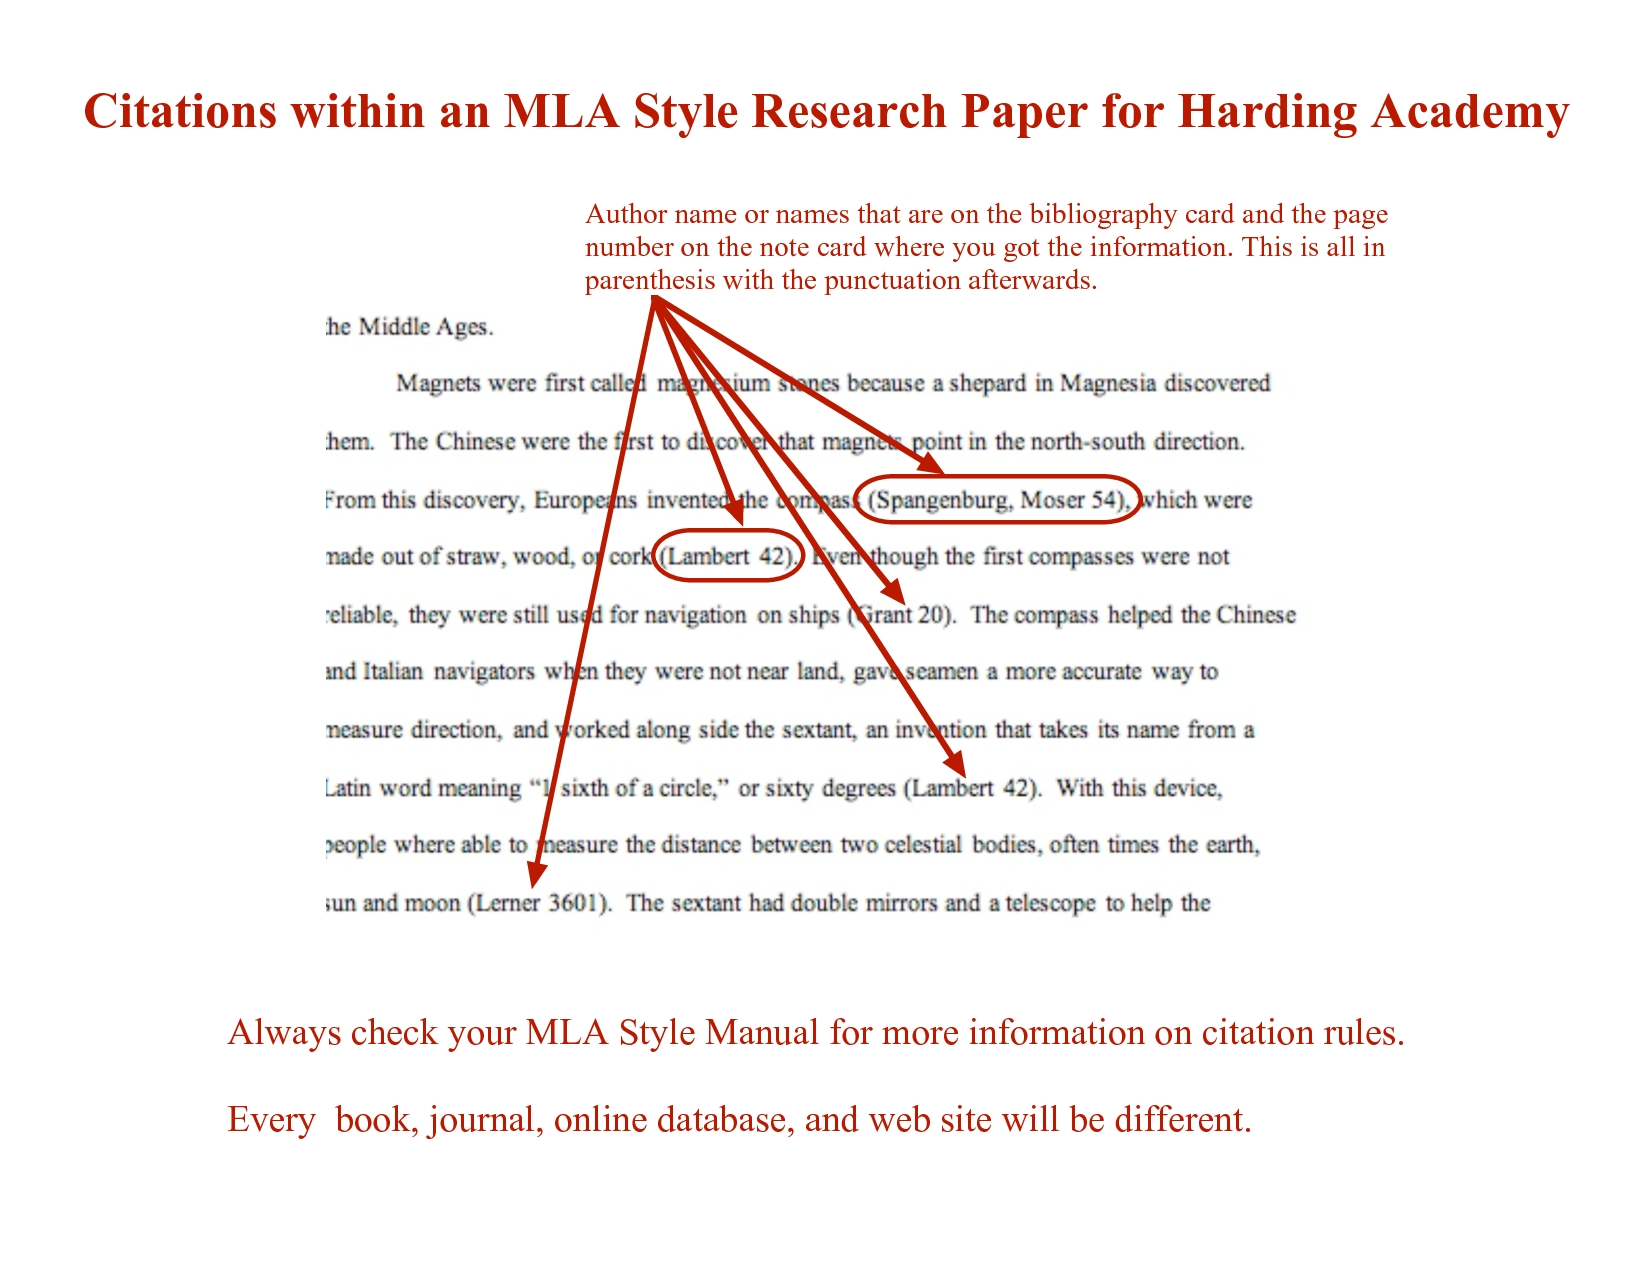 004 How To Cite Sources In Essay Citation Mla Twenty Hueandi Co Collection Of Solutions Quote From Website Stunning Research Papes Essays Apa Striking Text Parenthetical Example Multiple Authors Full